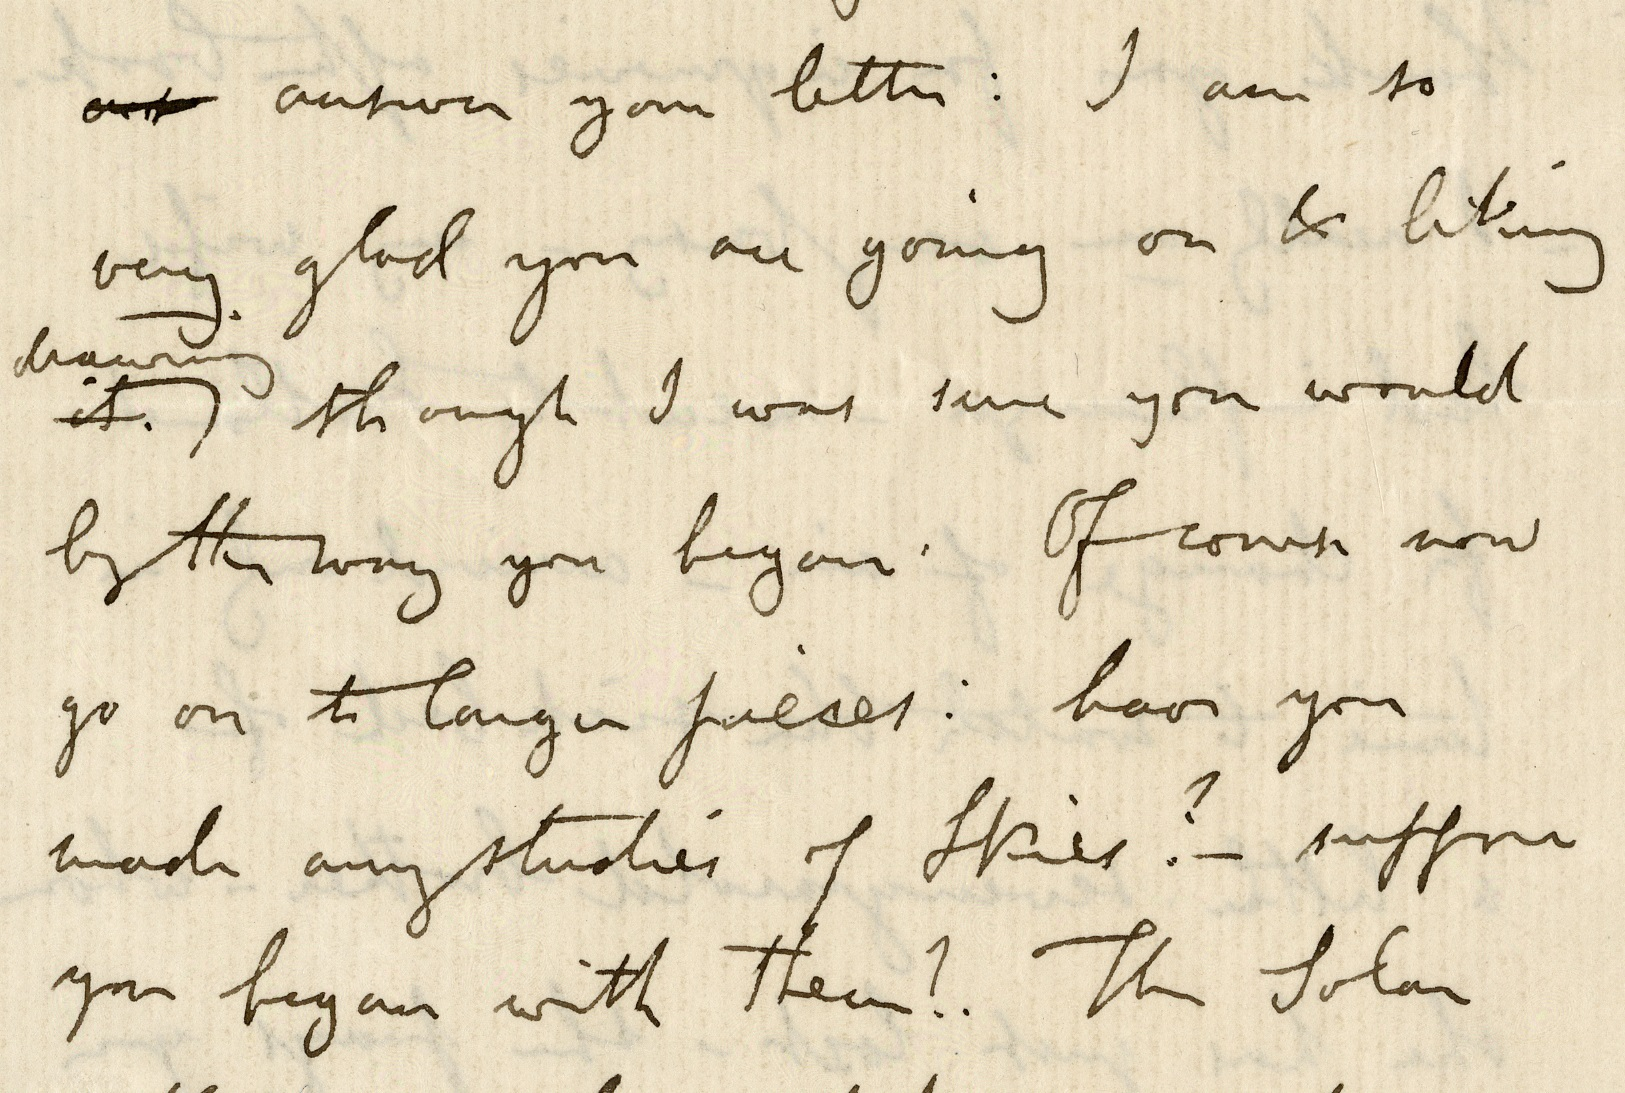 Extract from a letter from John Ruskin to Lady Pauline, advising her on her own artistic practice